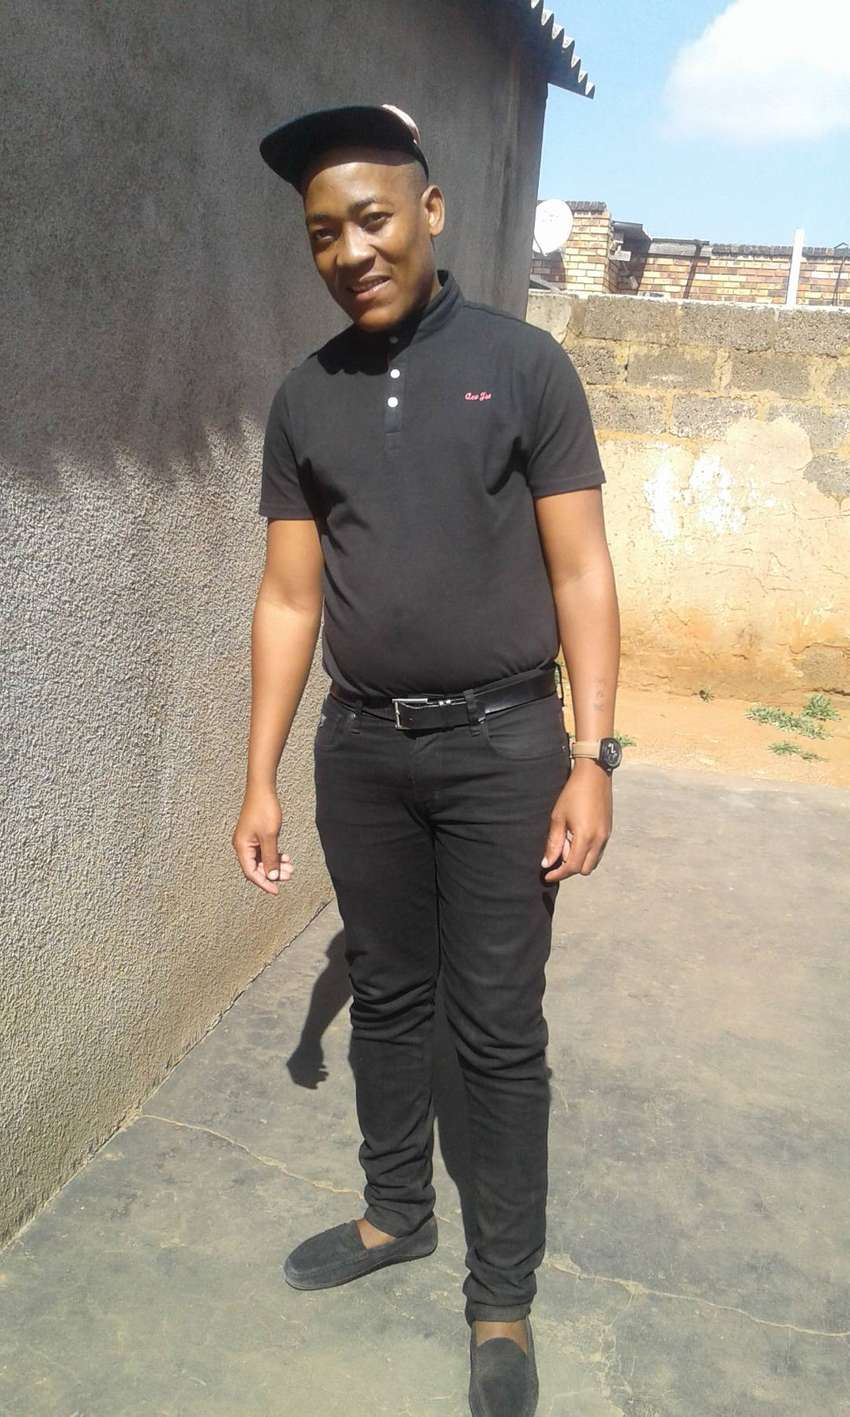 HARD WORKING GUY LOOKING FOR A JOB PART OR FULL TIME AROUND GAUTENG 0